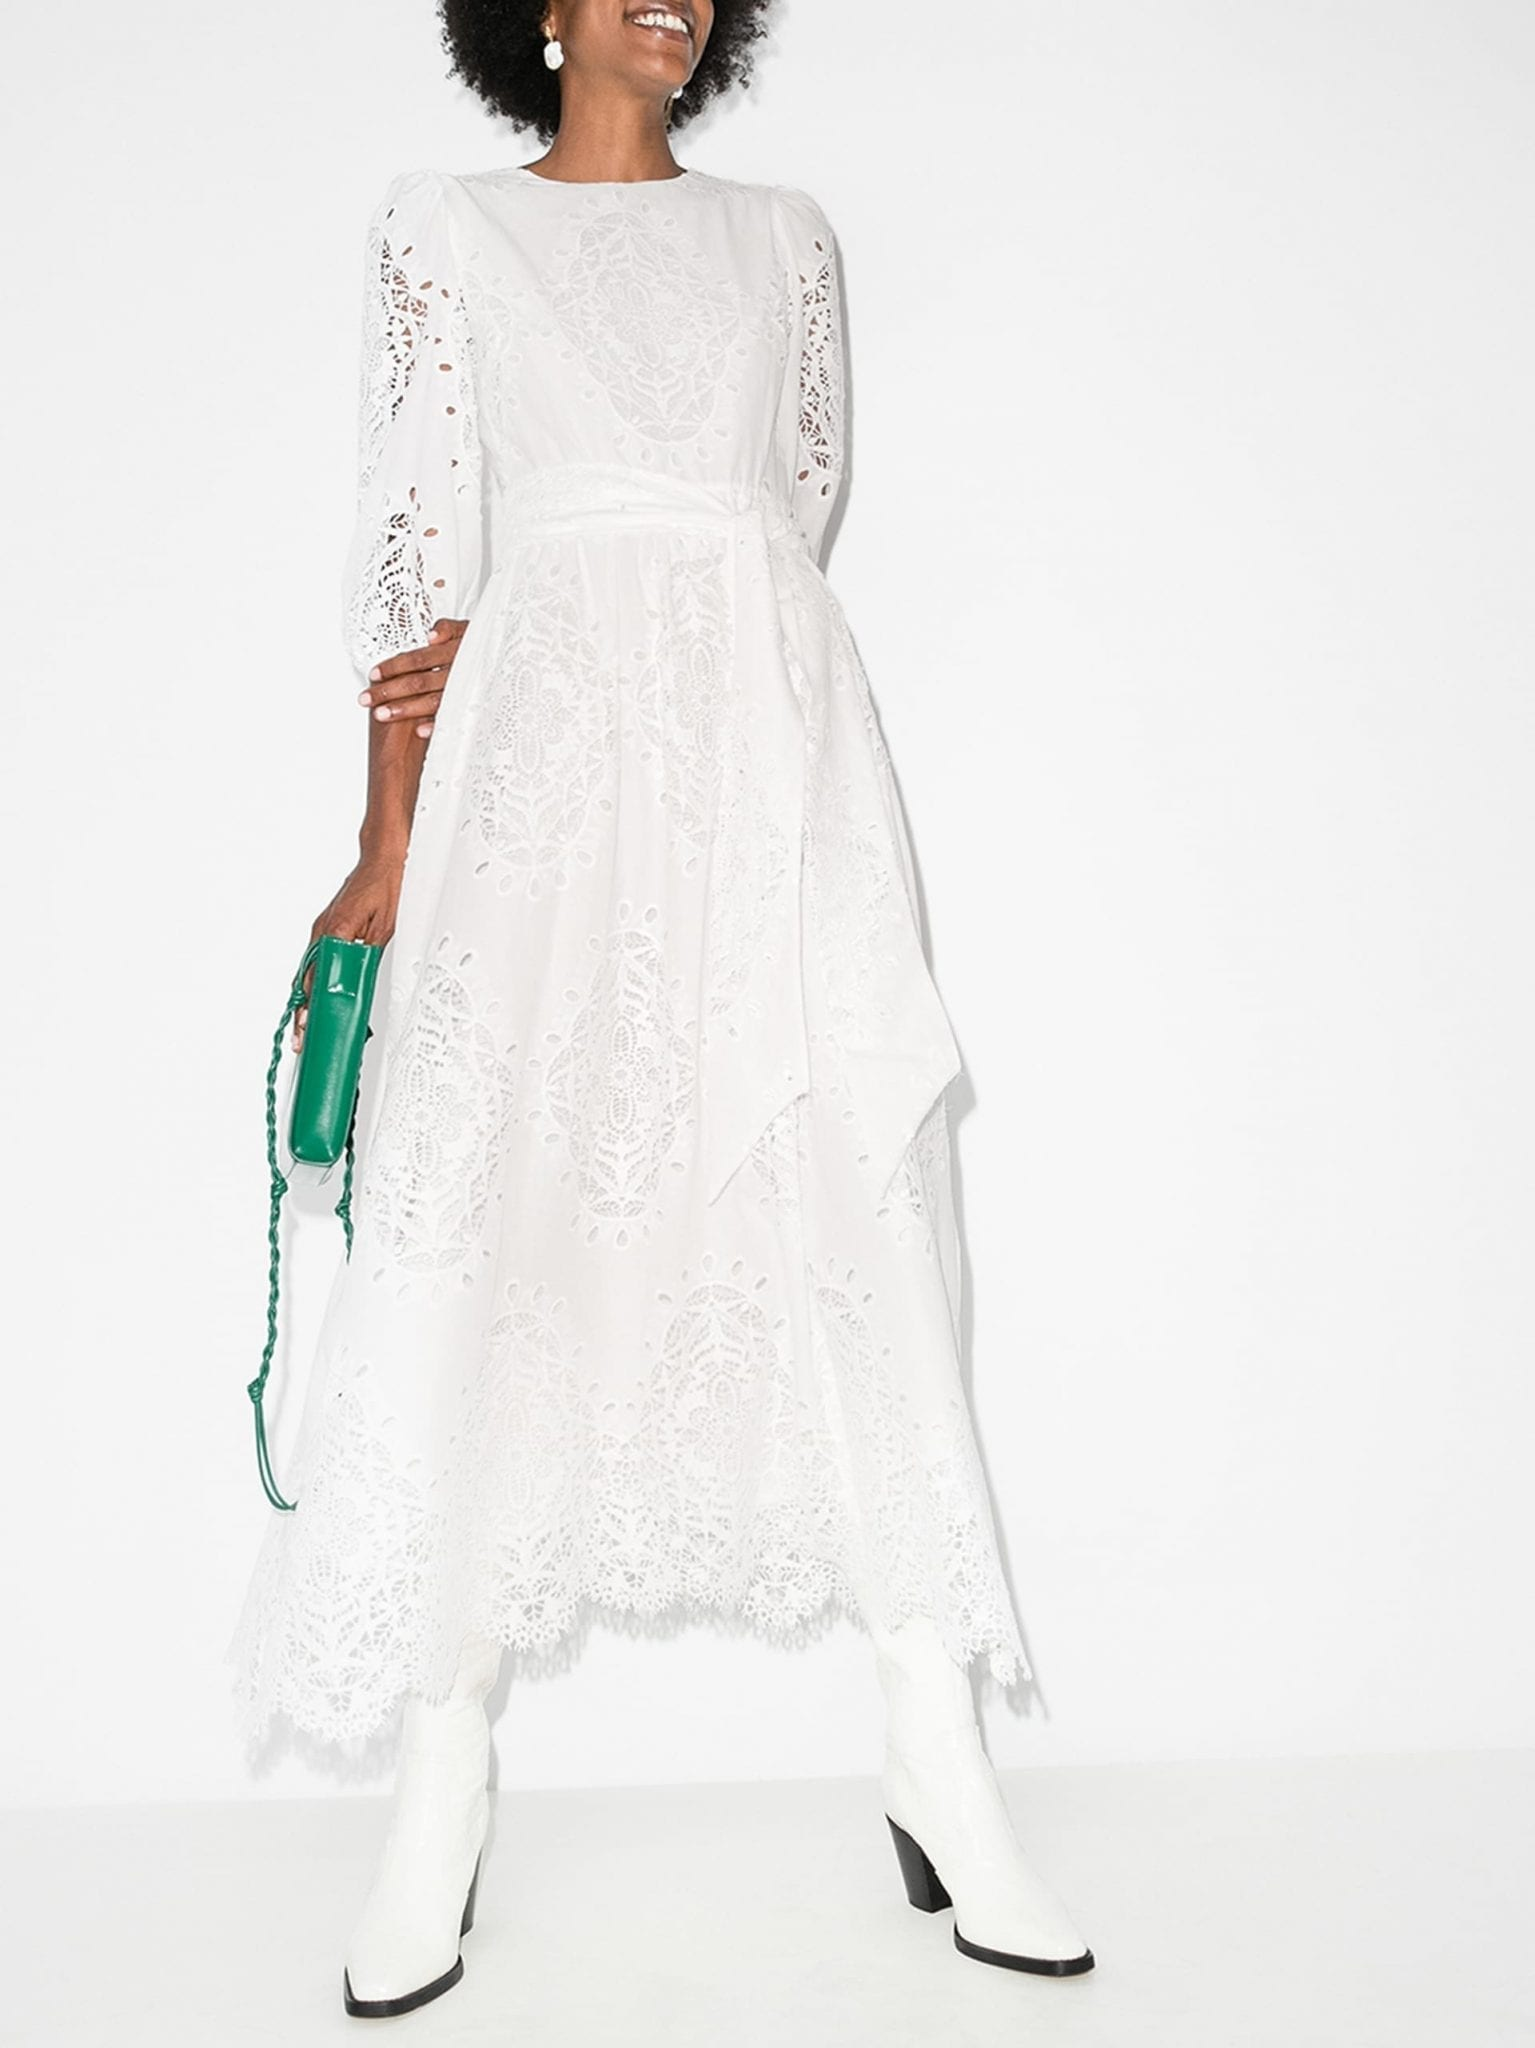 BORGO DE NOR Constance Lace Midi Dress